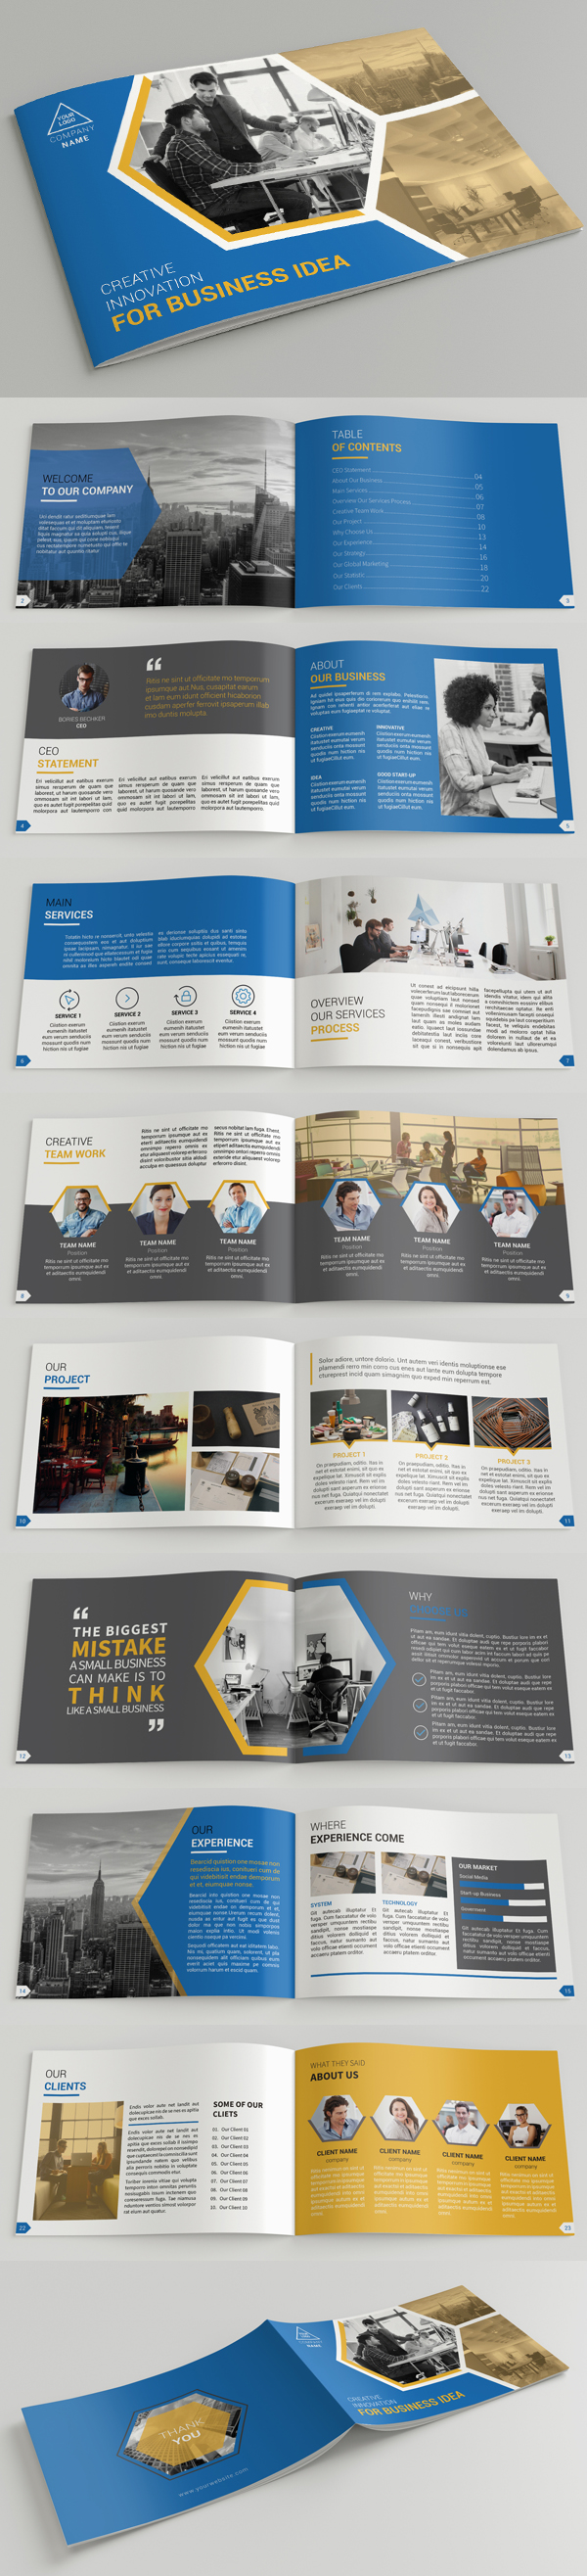 100 Professional Corporate Brochure Templates Design Graphic